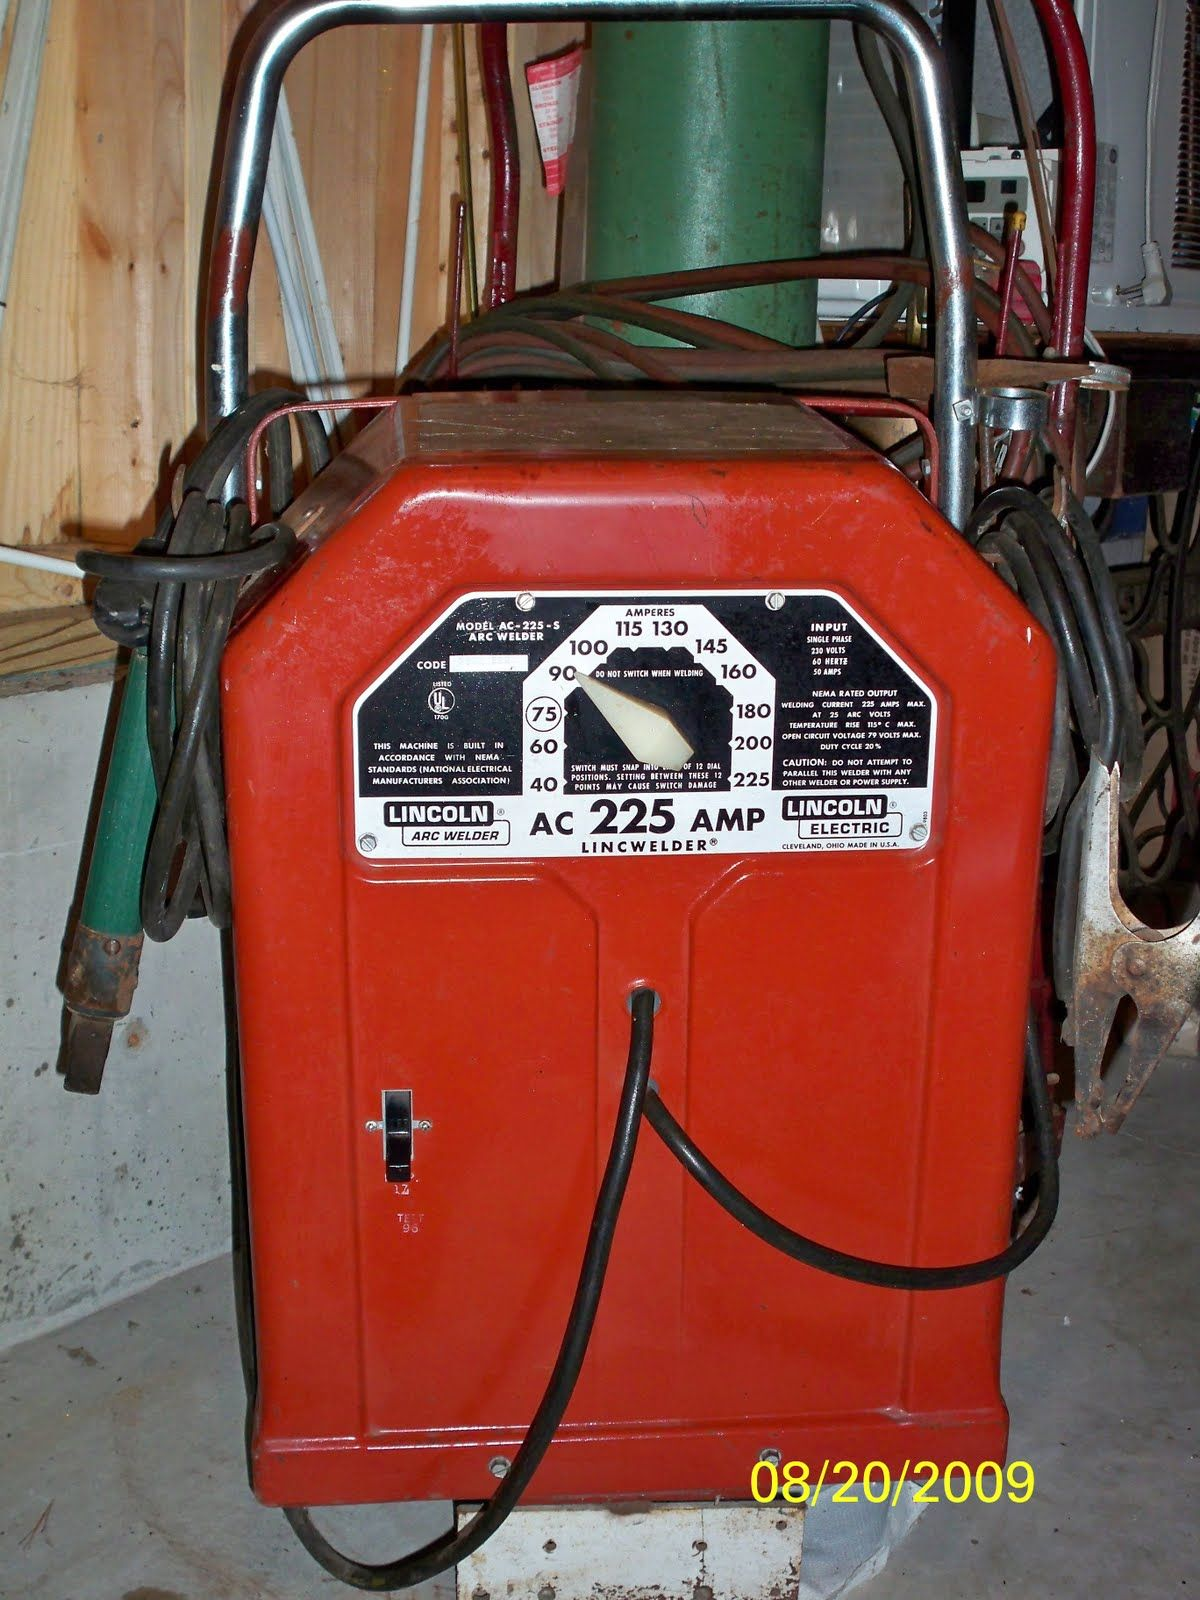 vintage lincoln arc welder bonnie\u0027s store lincoln electric arcvintage lincoln arc welder bonnie\u0027s store lincoln electric arc welder